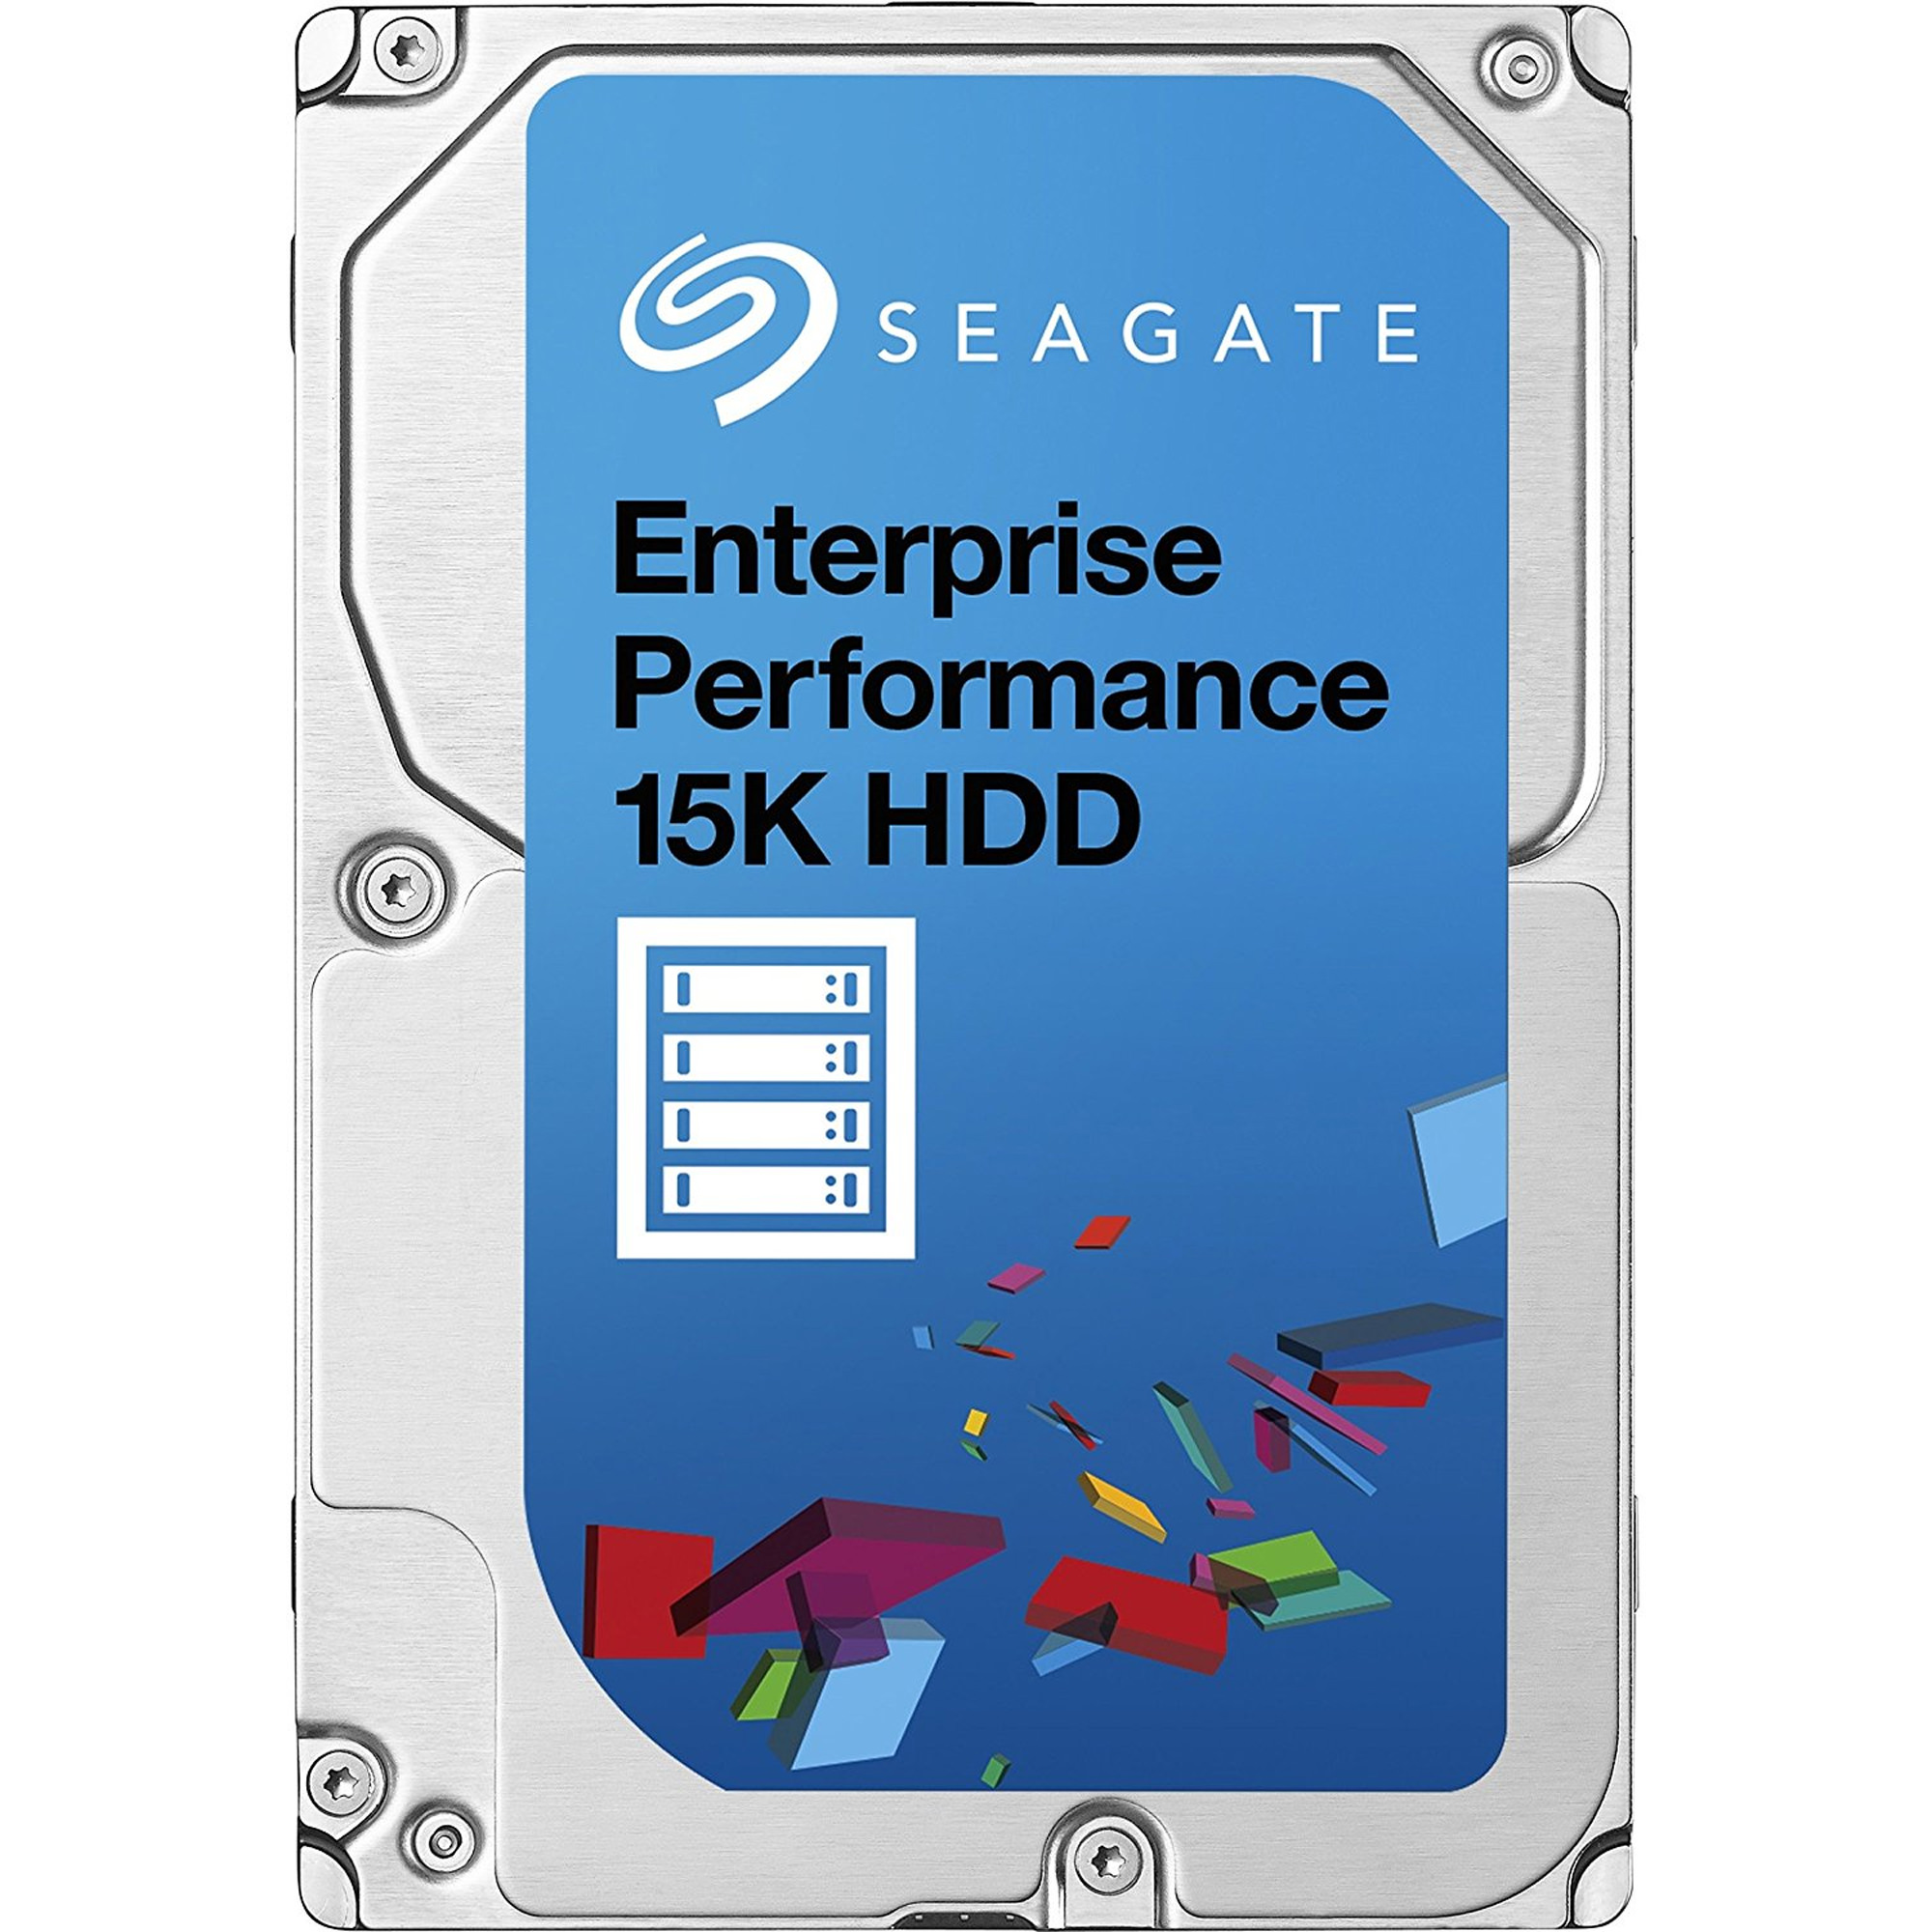 Seagate Enterprise Performance 15K HDD 300GB SAS RPM 2.5256MB CACHE